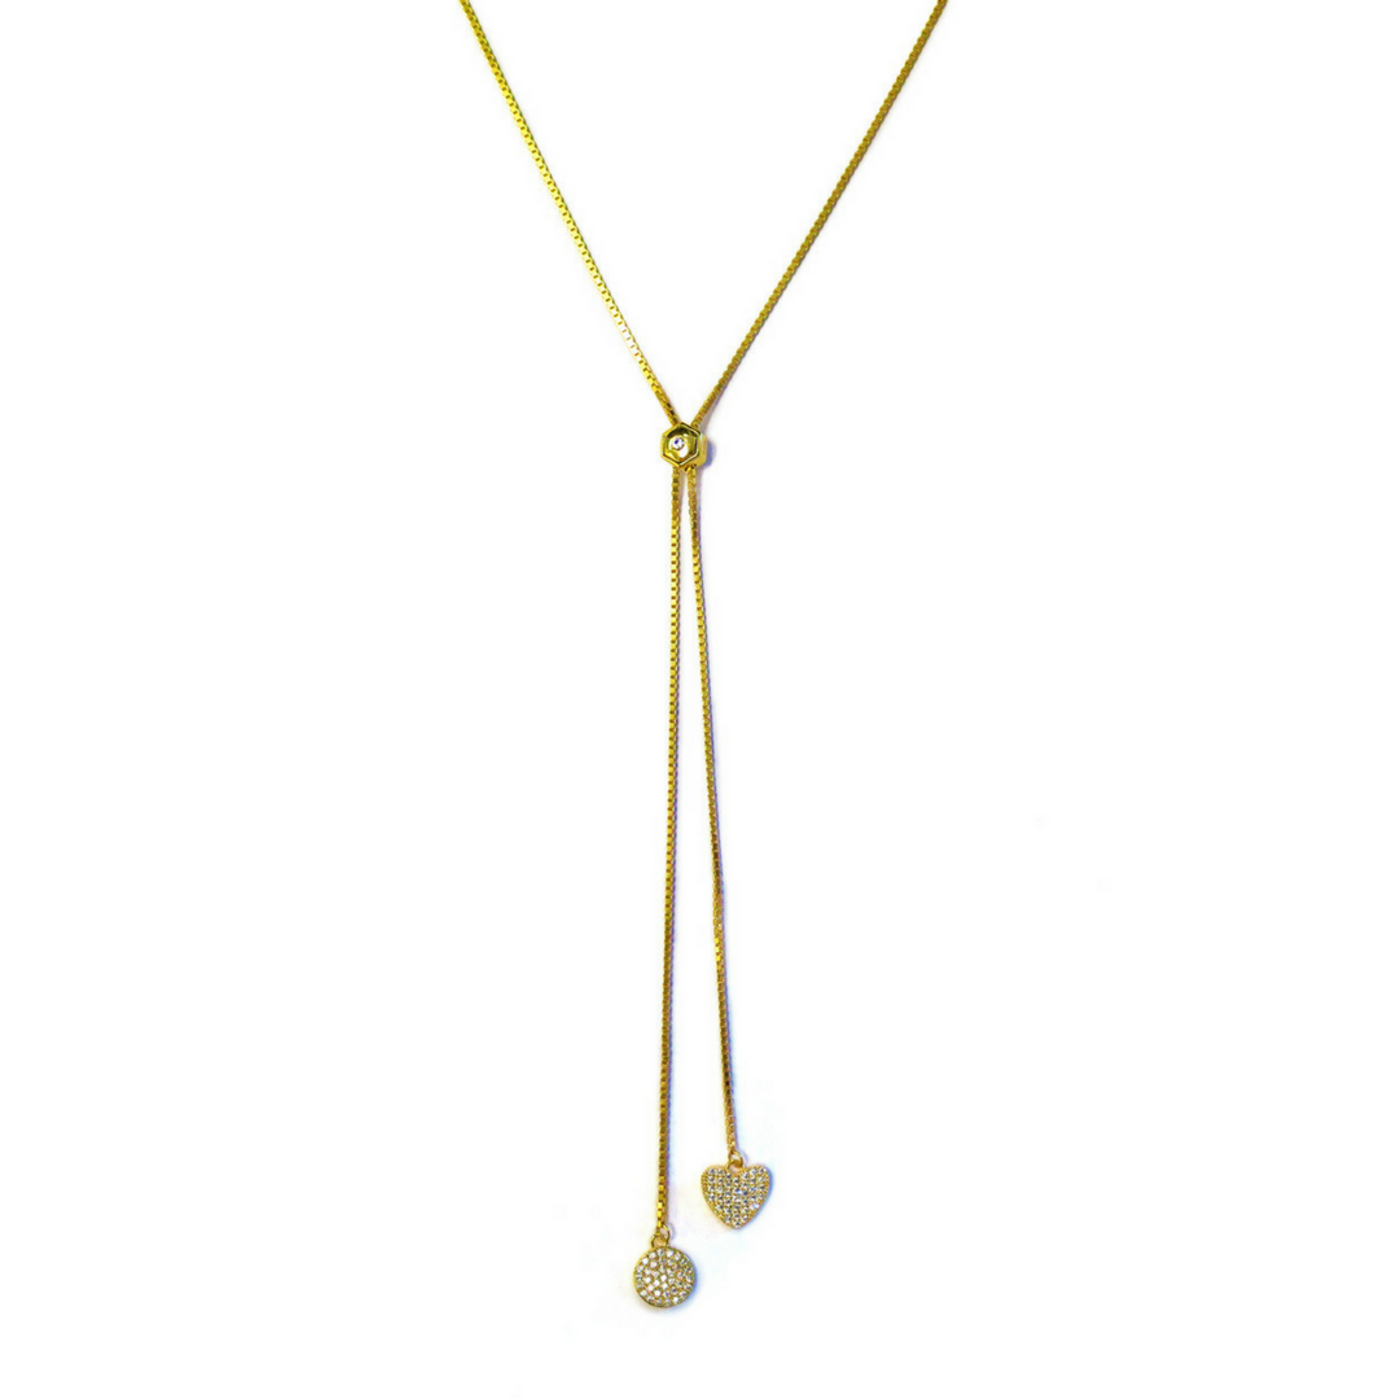 Playful Lariat Necklace